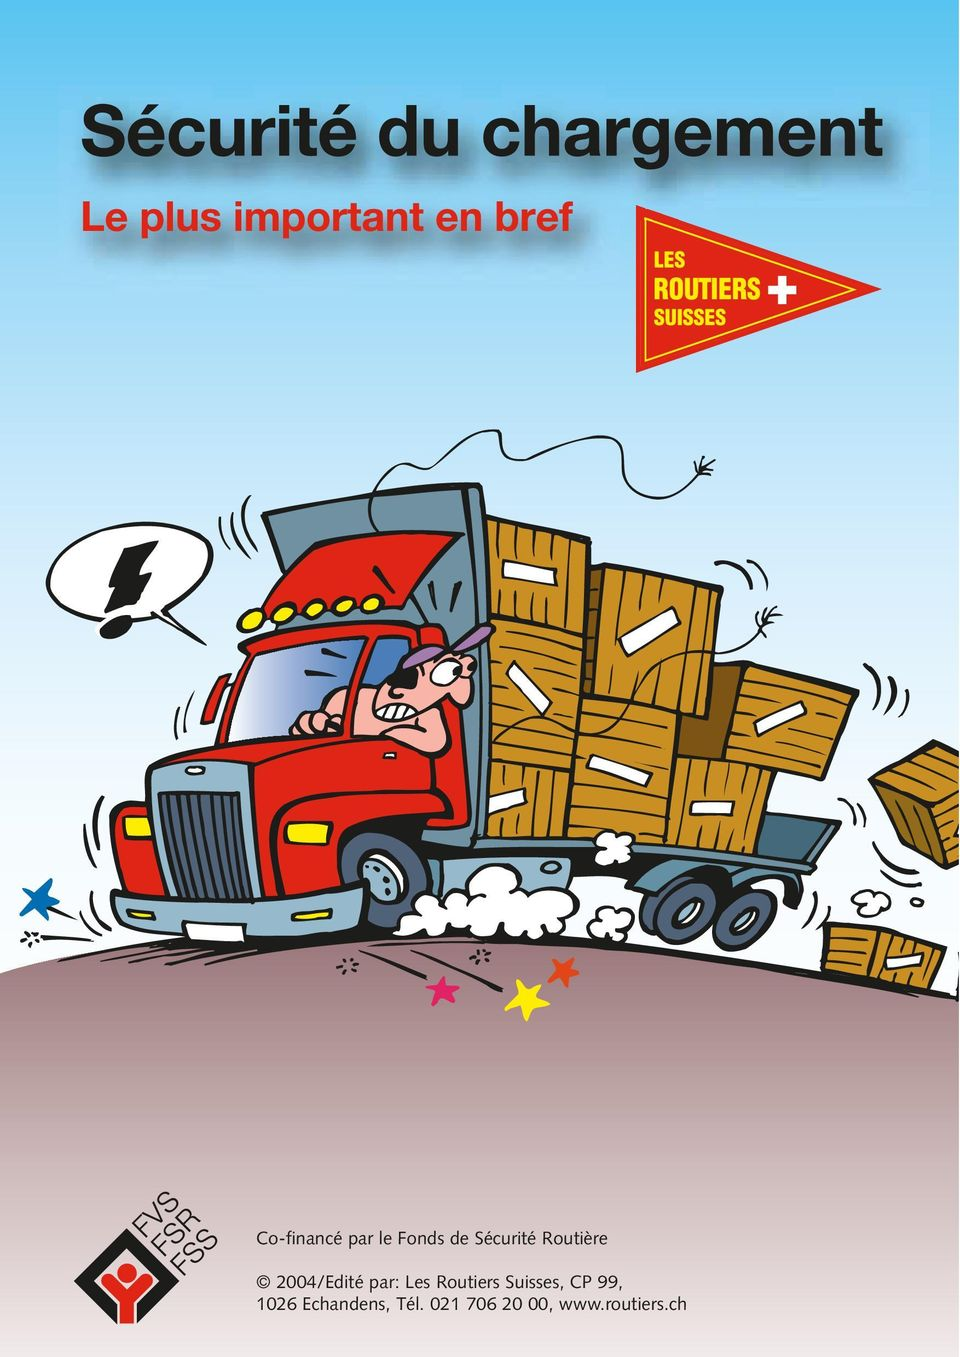 Routiers Suisses, CP 99, 1026